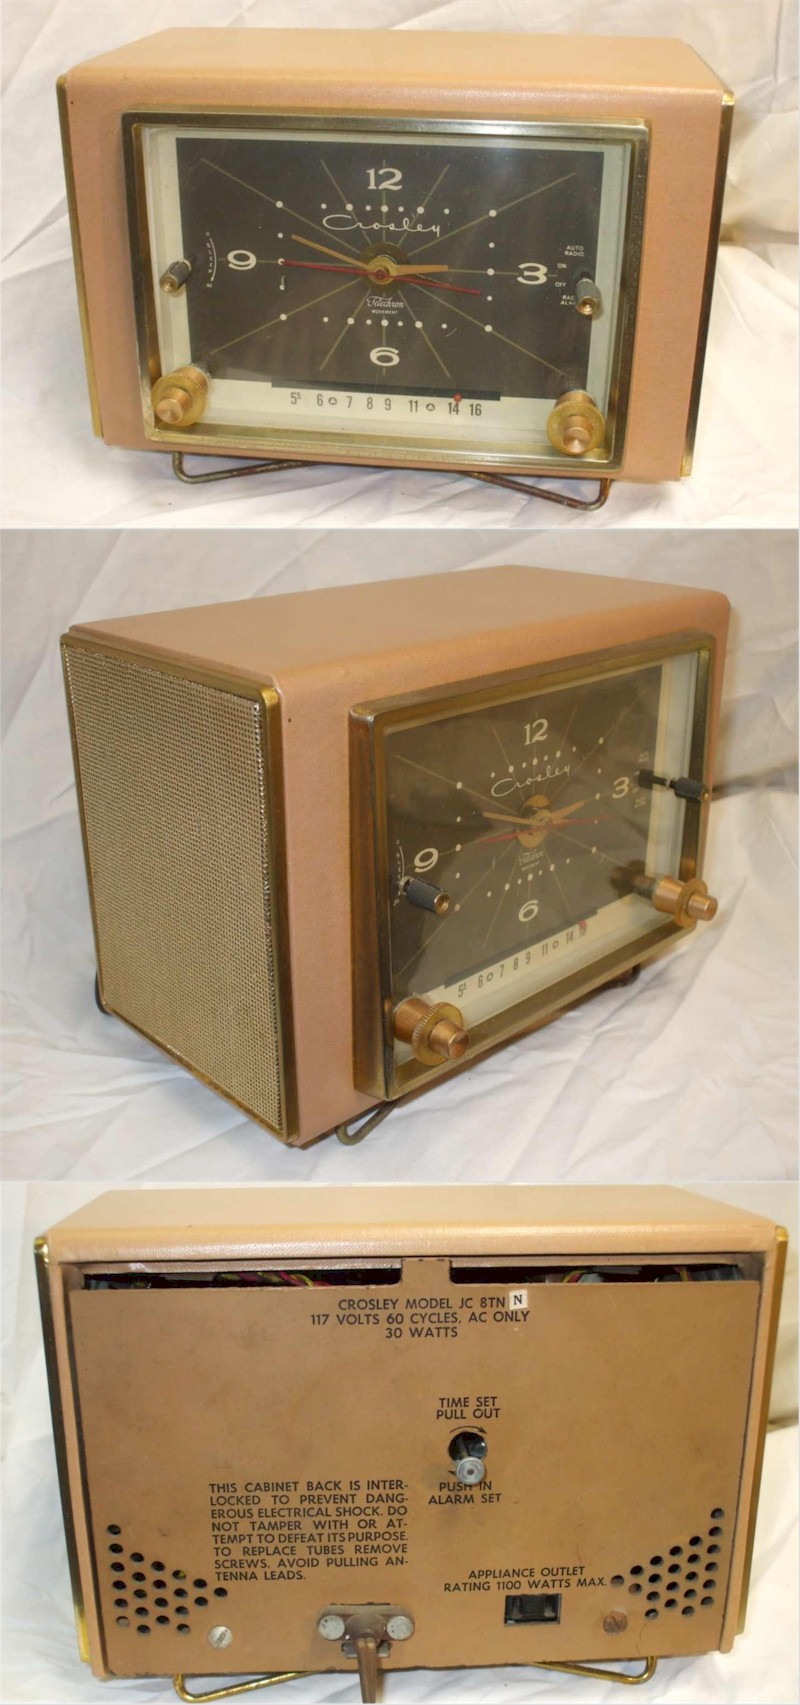 Crosley JC-8TN